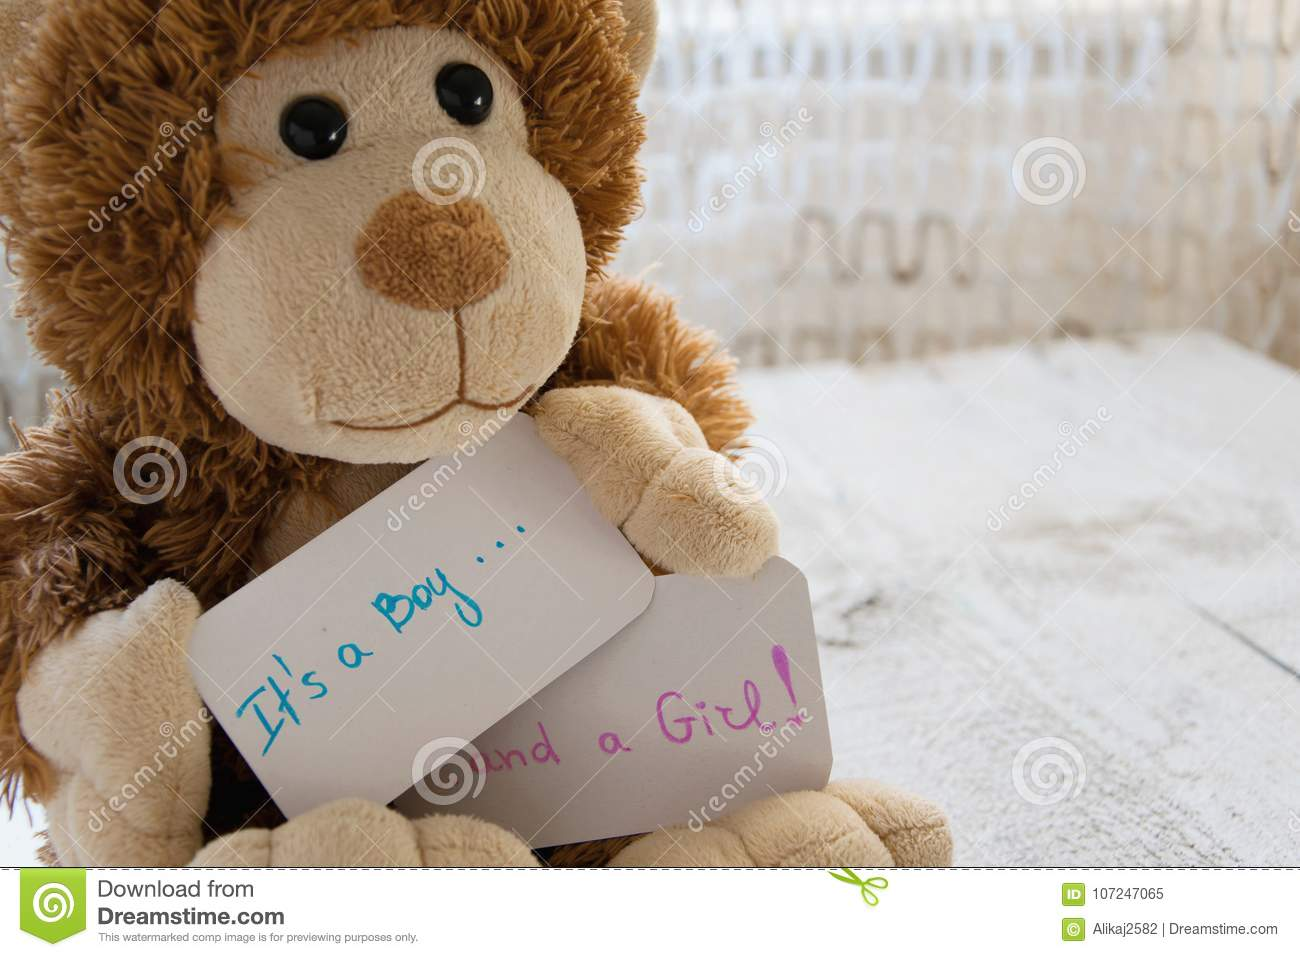 Baby shower `It`s a boy... and a girl`. Teddy bear holds an announcement card for twins arrivals in the family